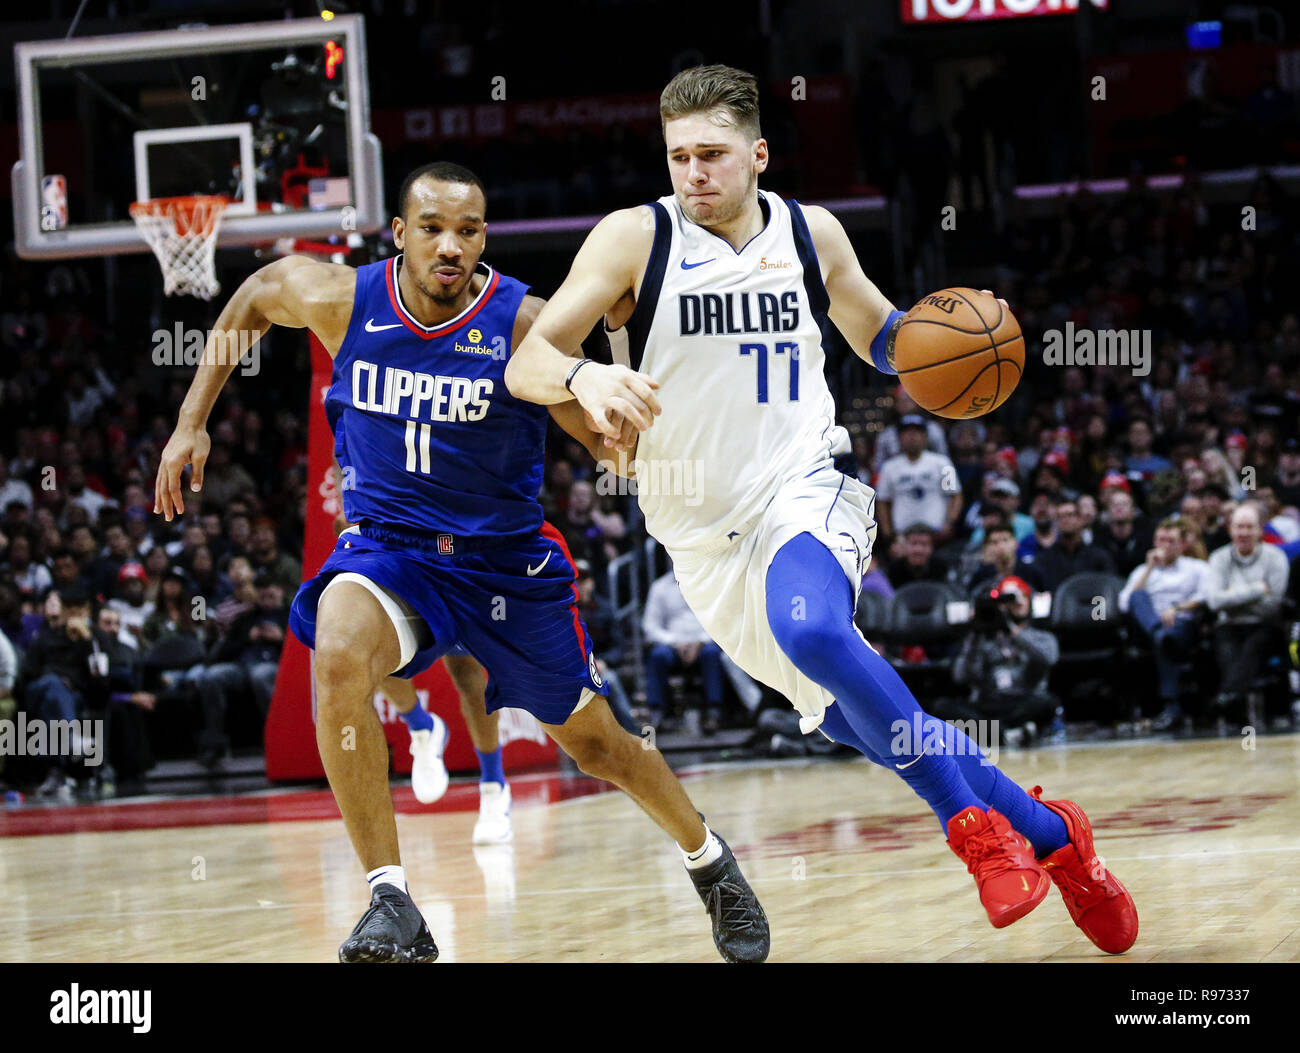 b283f4465dc3 Luka Doncic Stock Photos   Luka Doncic Stock Images - Alamy